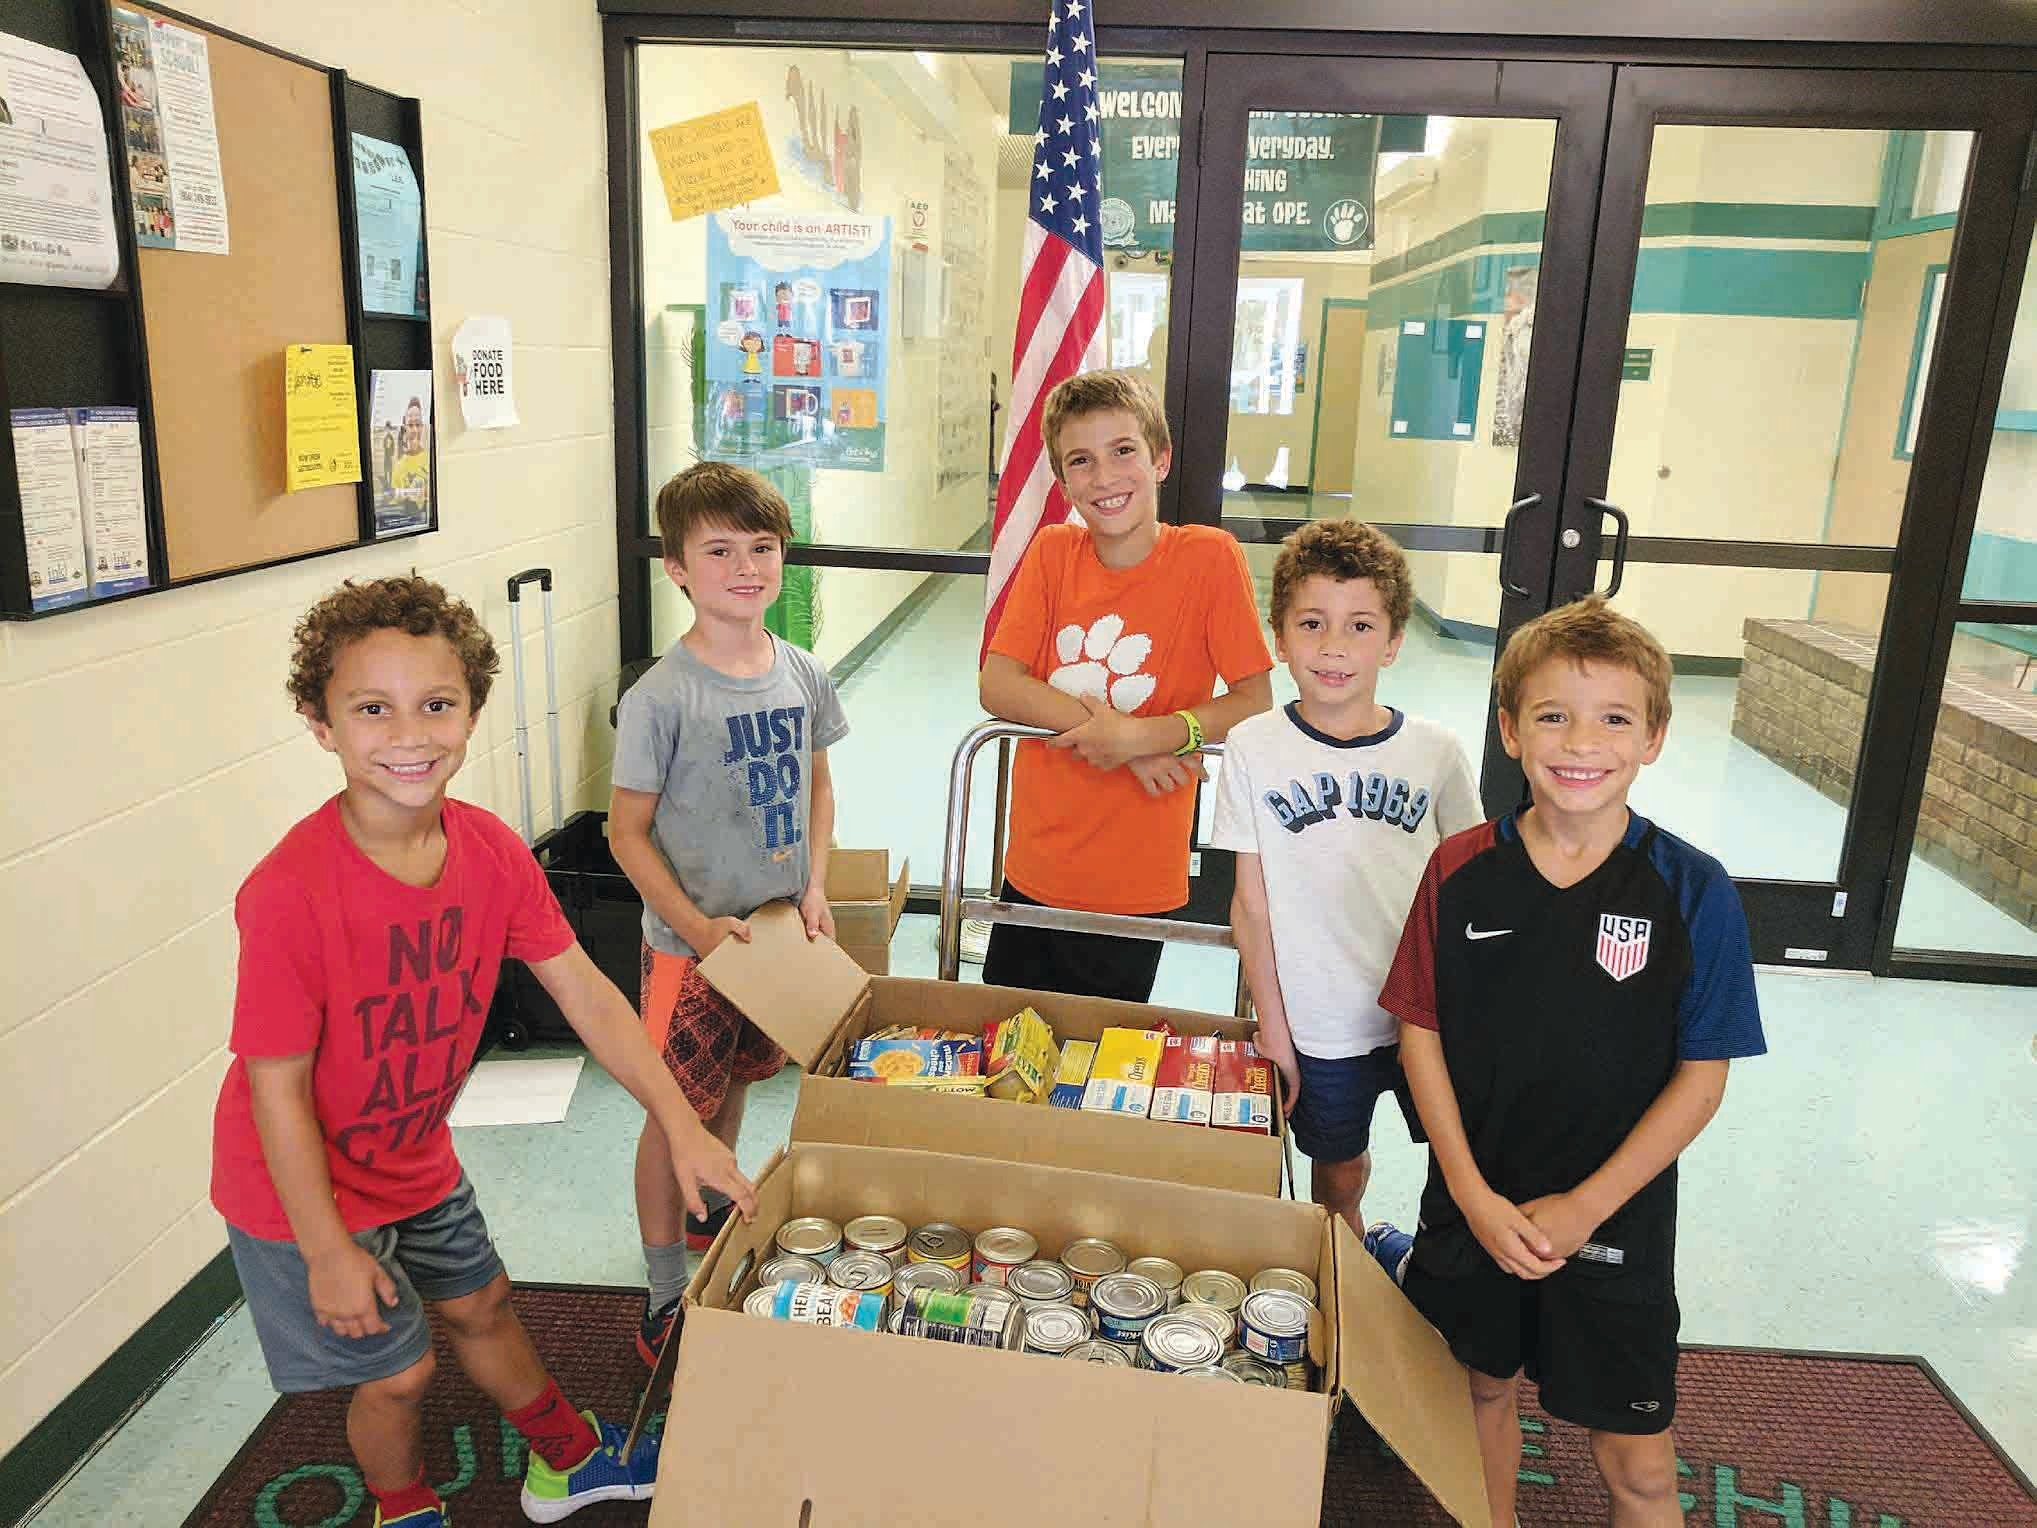 Ocean Palms Elementary recently exceeded its goal of collecting 1,000 food items by collecting 1,789 - a full day before the deadline. Donations benefit the St. Francis House, Migrant Workers in Armstrong and the Celebration Lutheran Food Pantry. School students celebrated the achievement by wearing a crazy/favorite hat on Friday, Sept. 8.